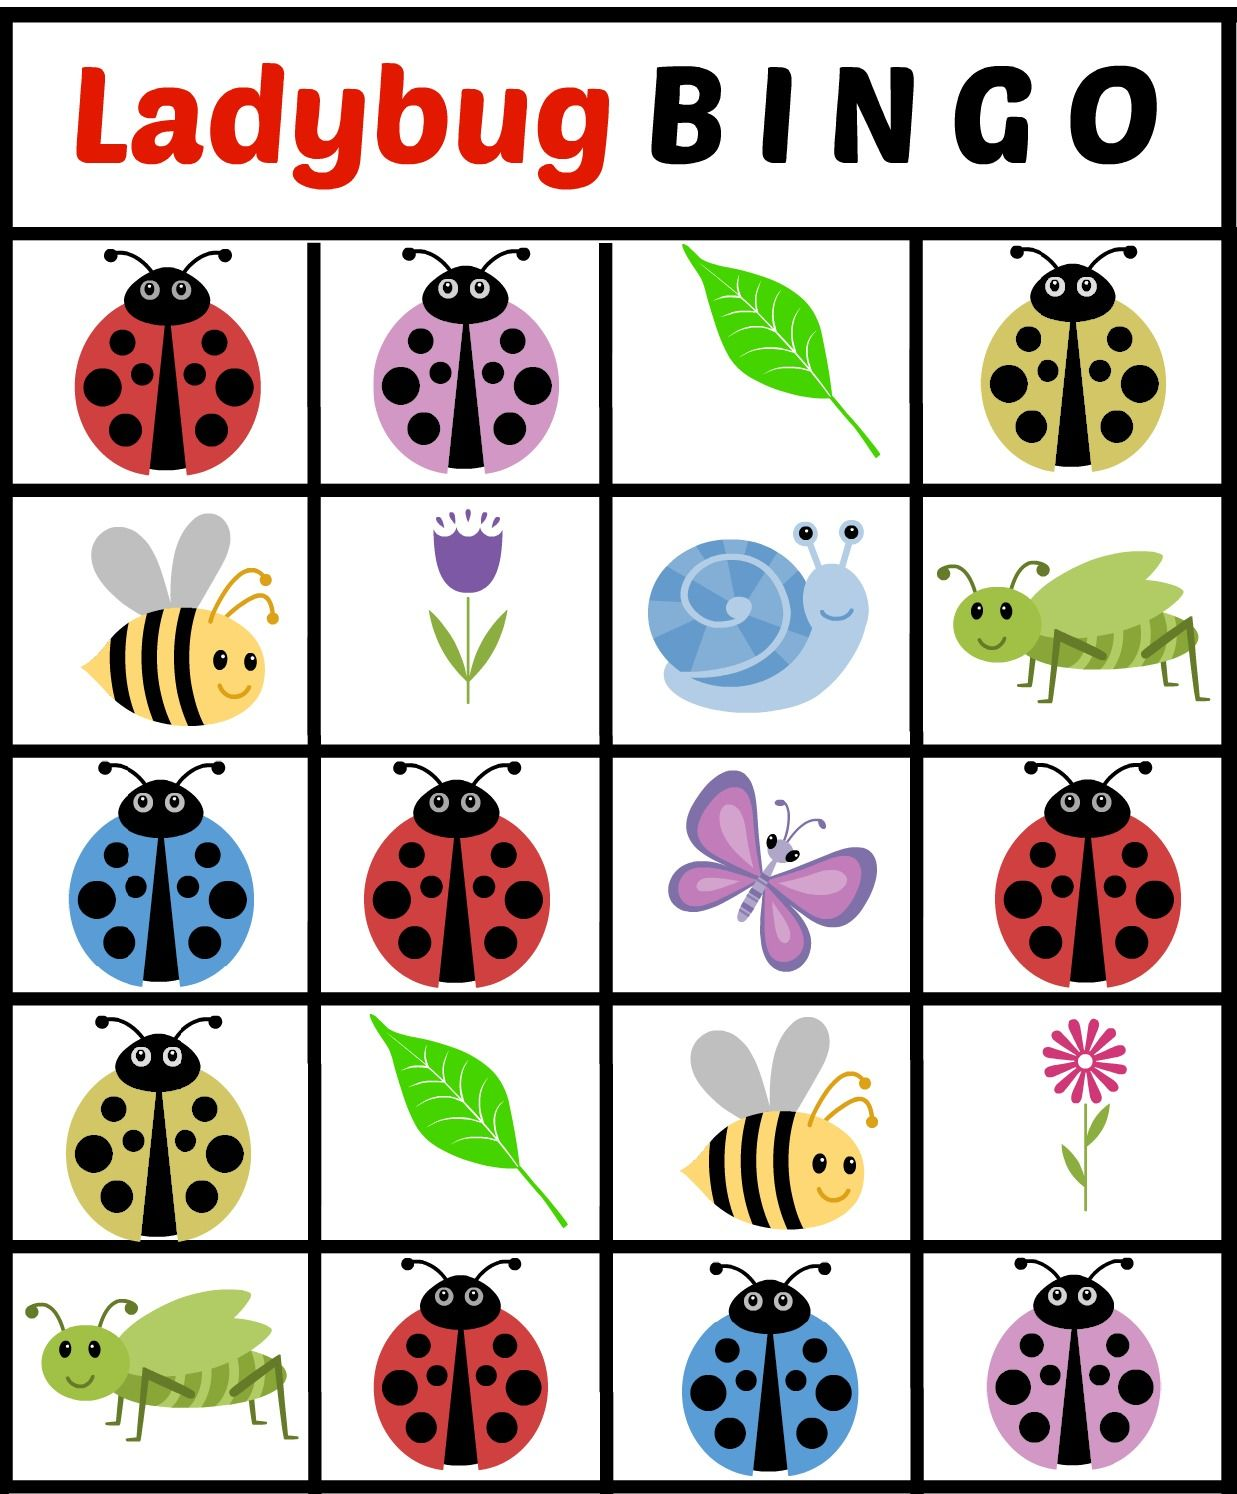 Ladybug Bingo Card 1 - jenny at dapperhouse Free Printables | Craft ...